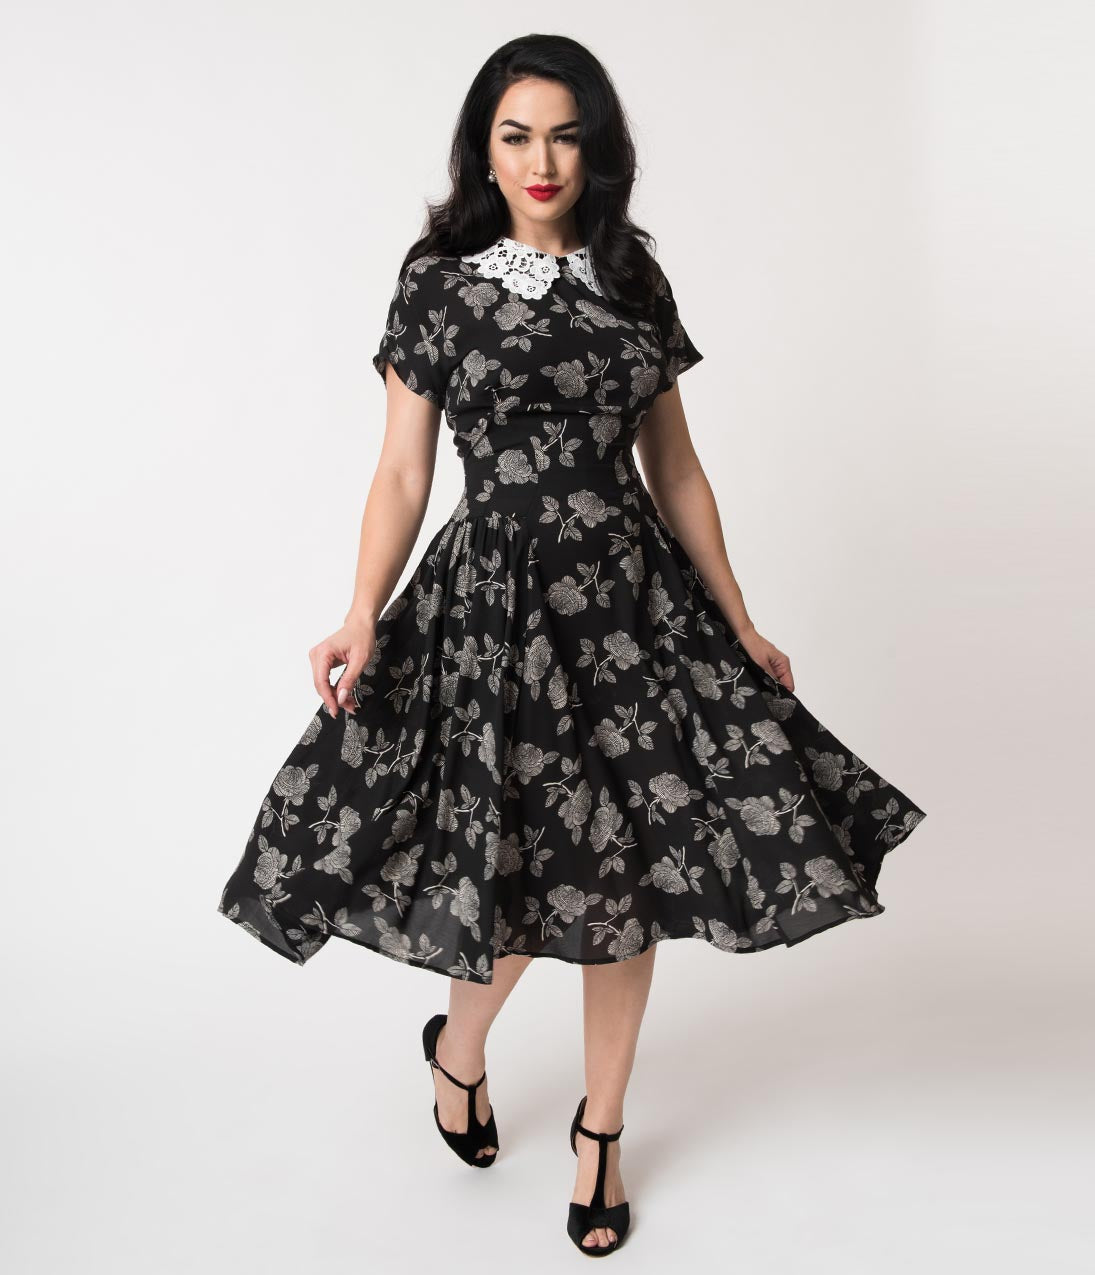 1940s Dresses | 40s Dress, Swing Dress Unique Vintage 1940S Black  White Floral Lace Collar Margie Dress $88.00 AT vintagedancer.com